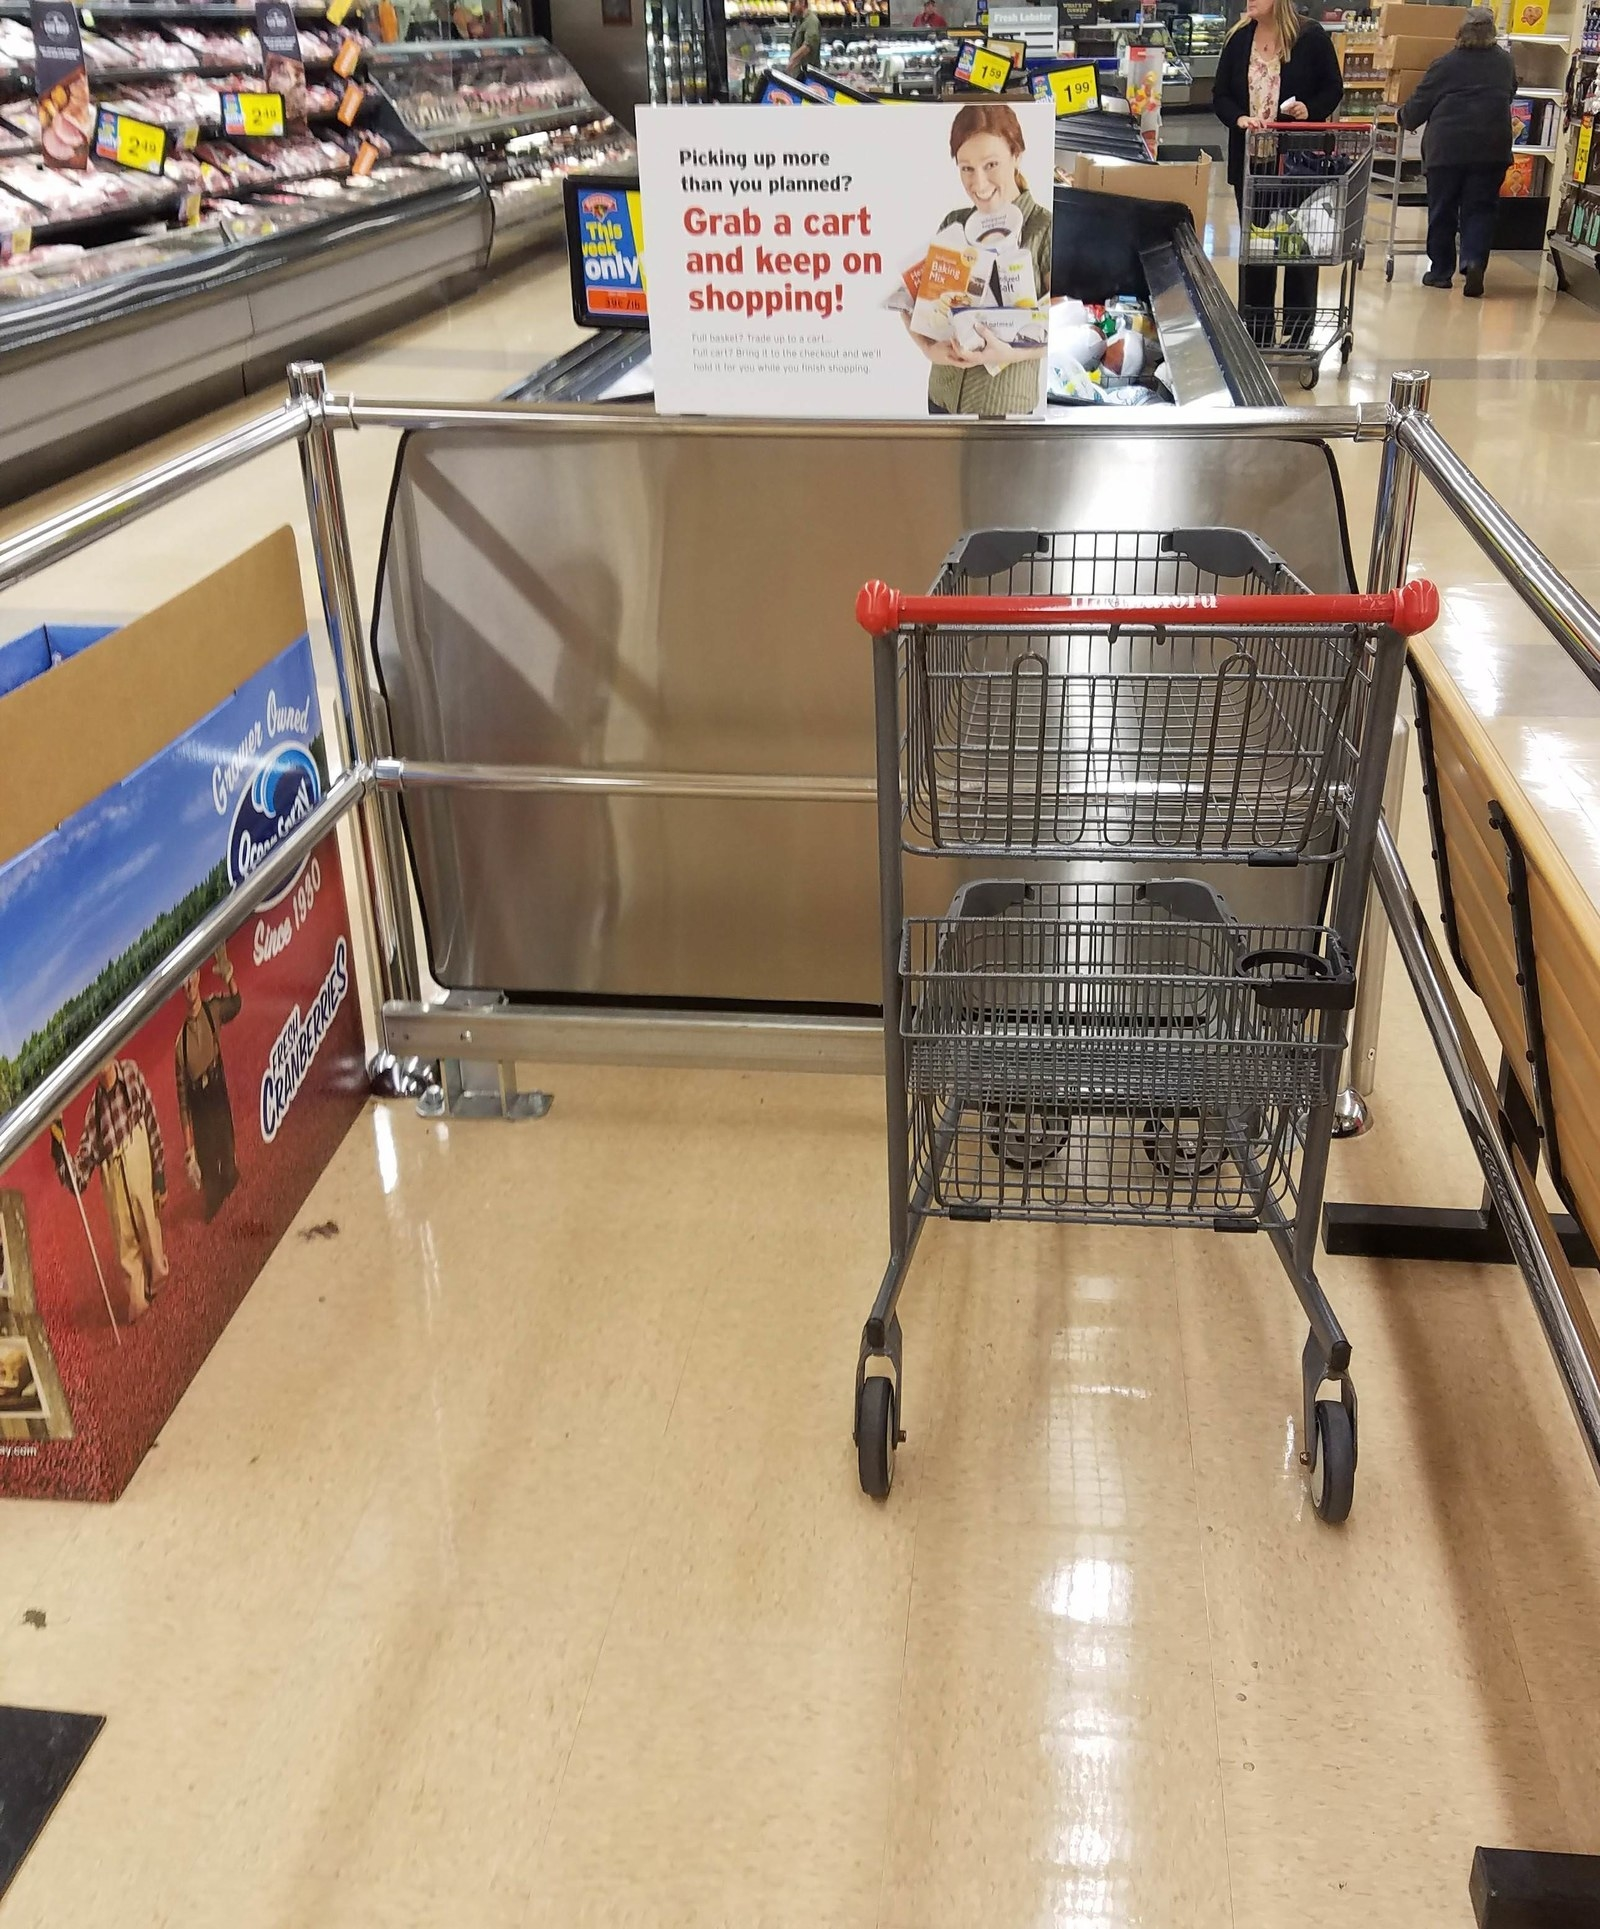 13 Grocery Store Shopping Cart Situations That Deserve A Round Of Applause